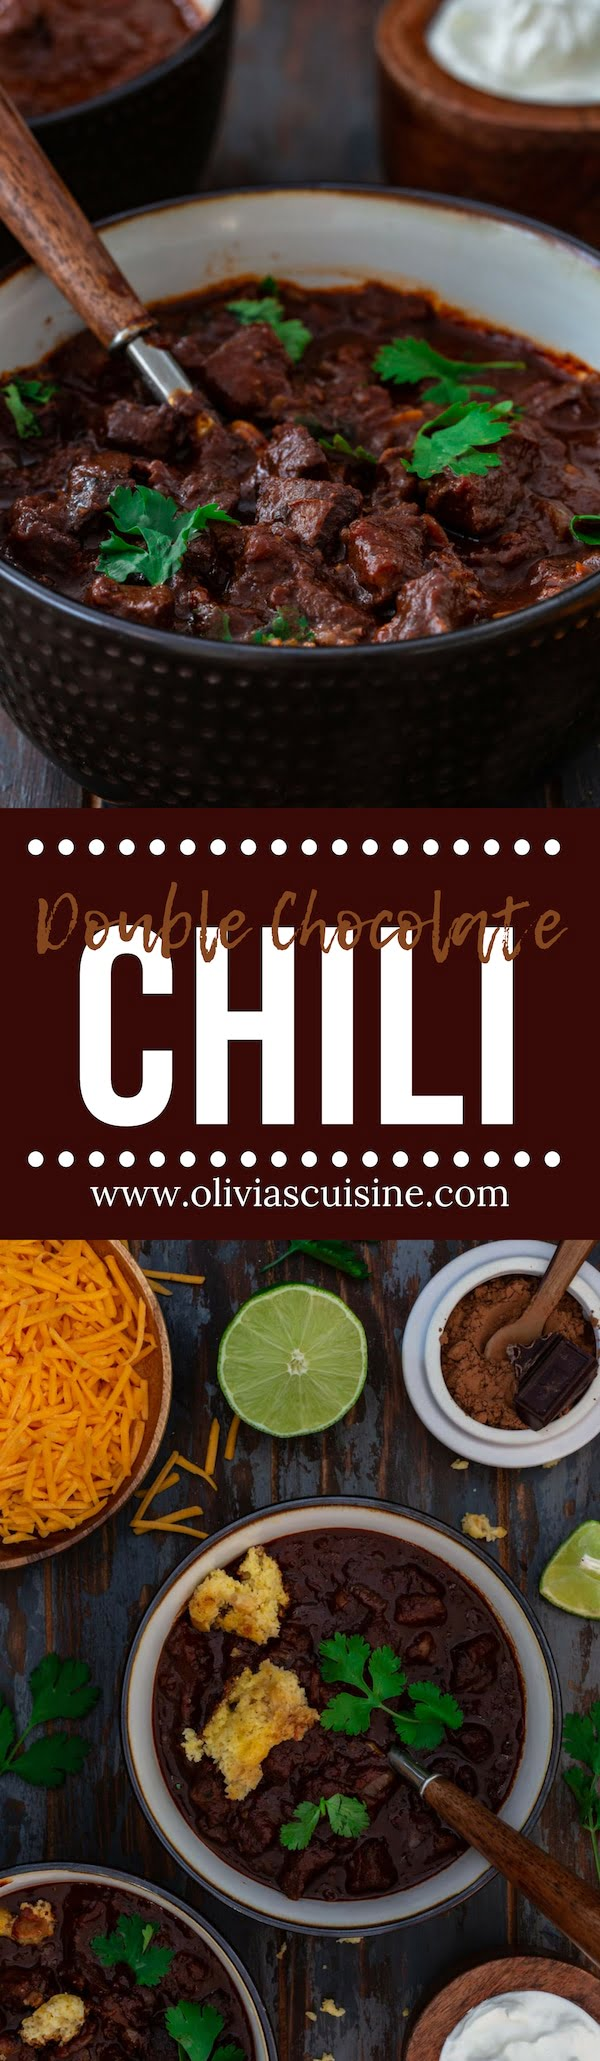 Double Chocolate Chili | www.oliviascuisine.com | If you've never tried Chocolate Chili, you are in for a treat! This is the richest chili I have ever tasted. The chocolate adds a deep and slightly sweet flavor that counterbalances the heat from the chili powders. It's a must try and a great way to feed a football crowd! (Recipe and food photography by @oliviascuisine). #superbowl #gameday #chili #chocolate